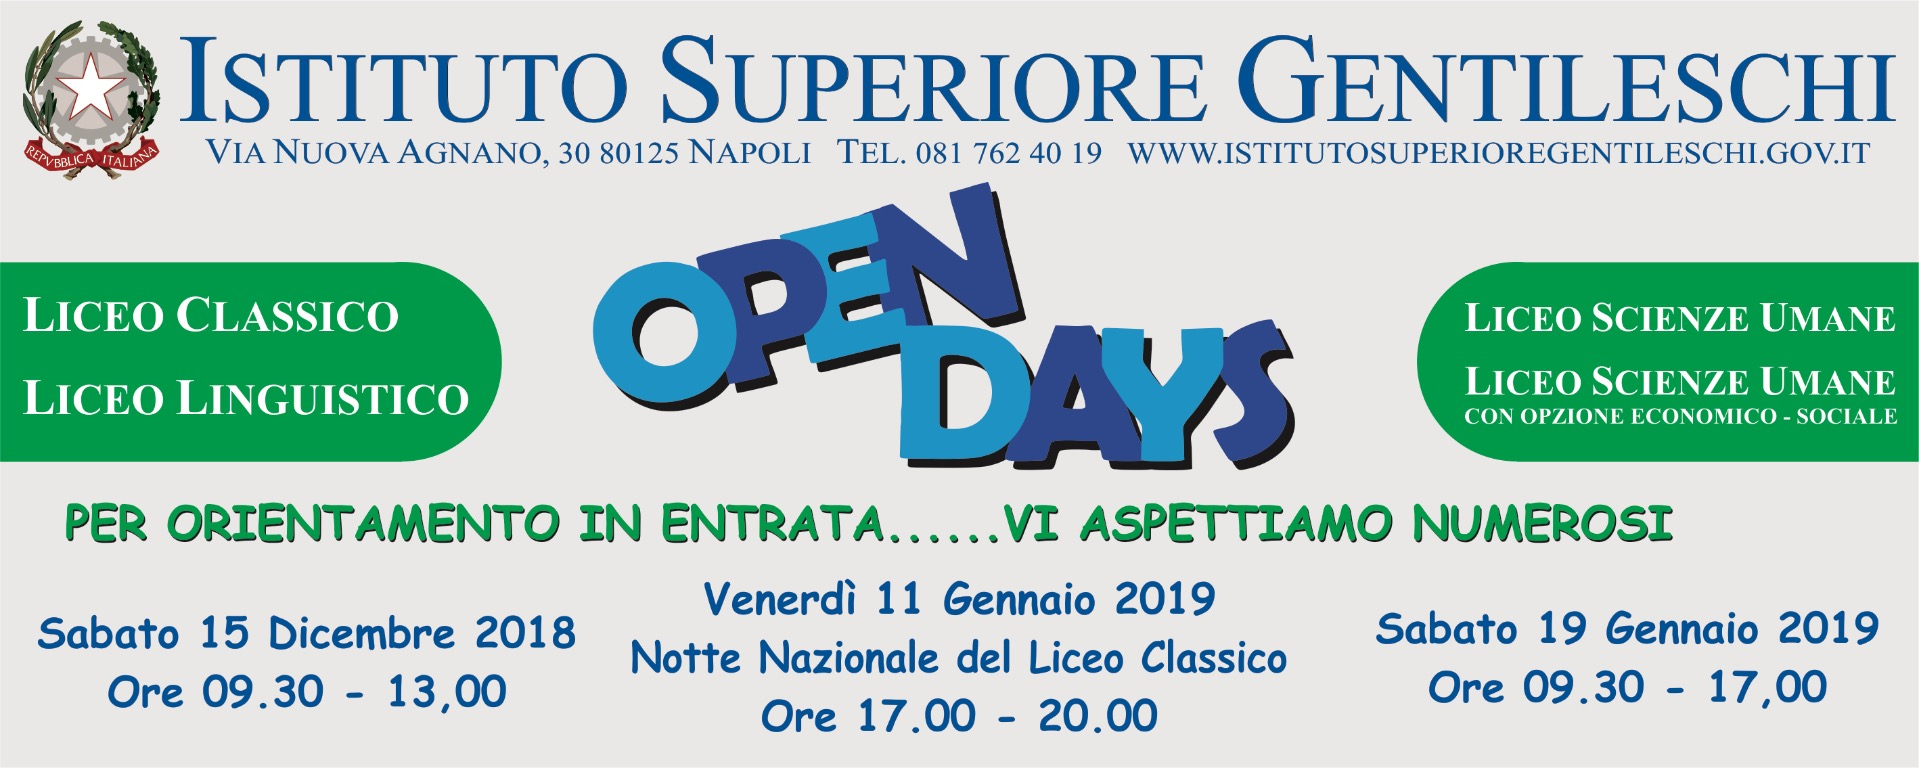 Open day Gentileschi 2019